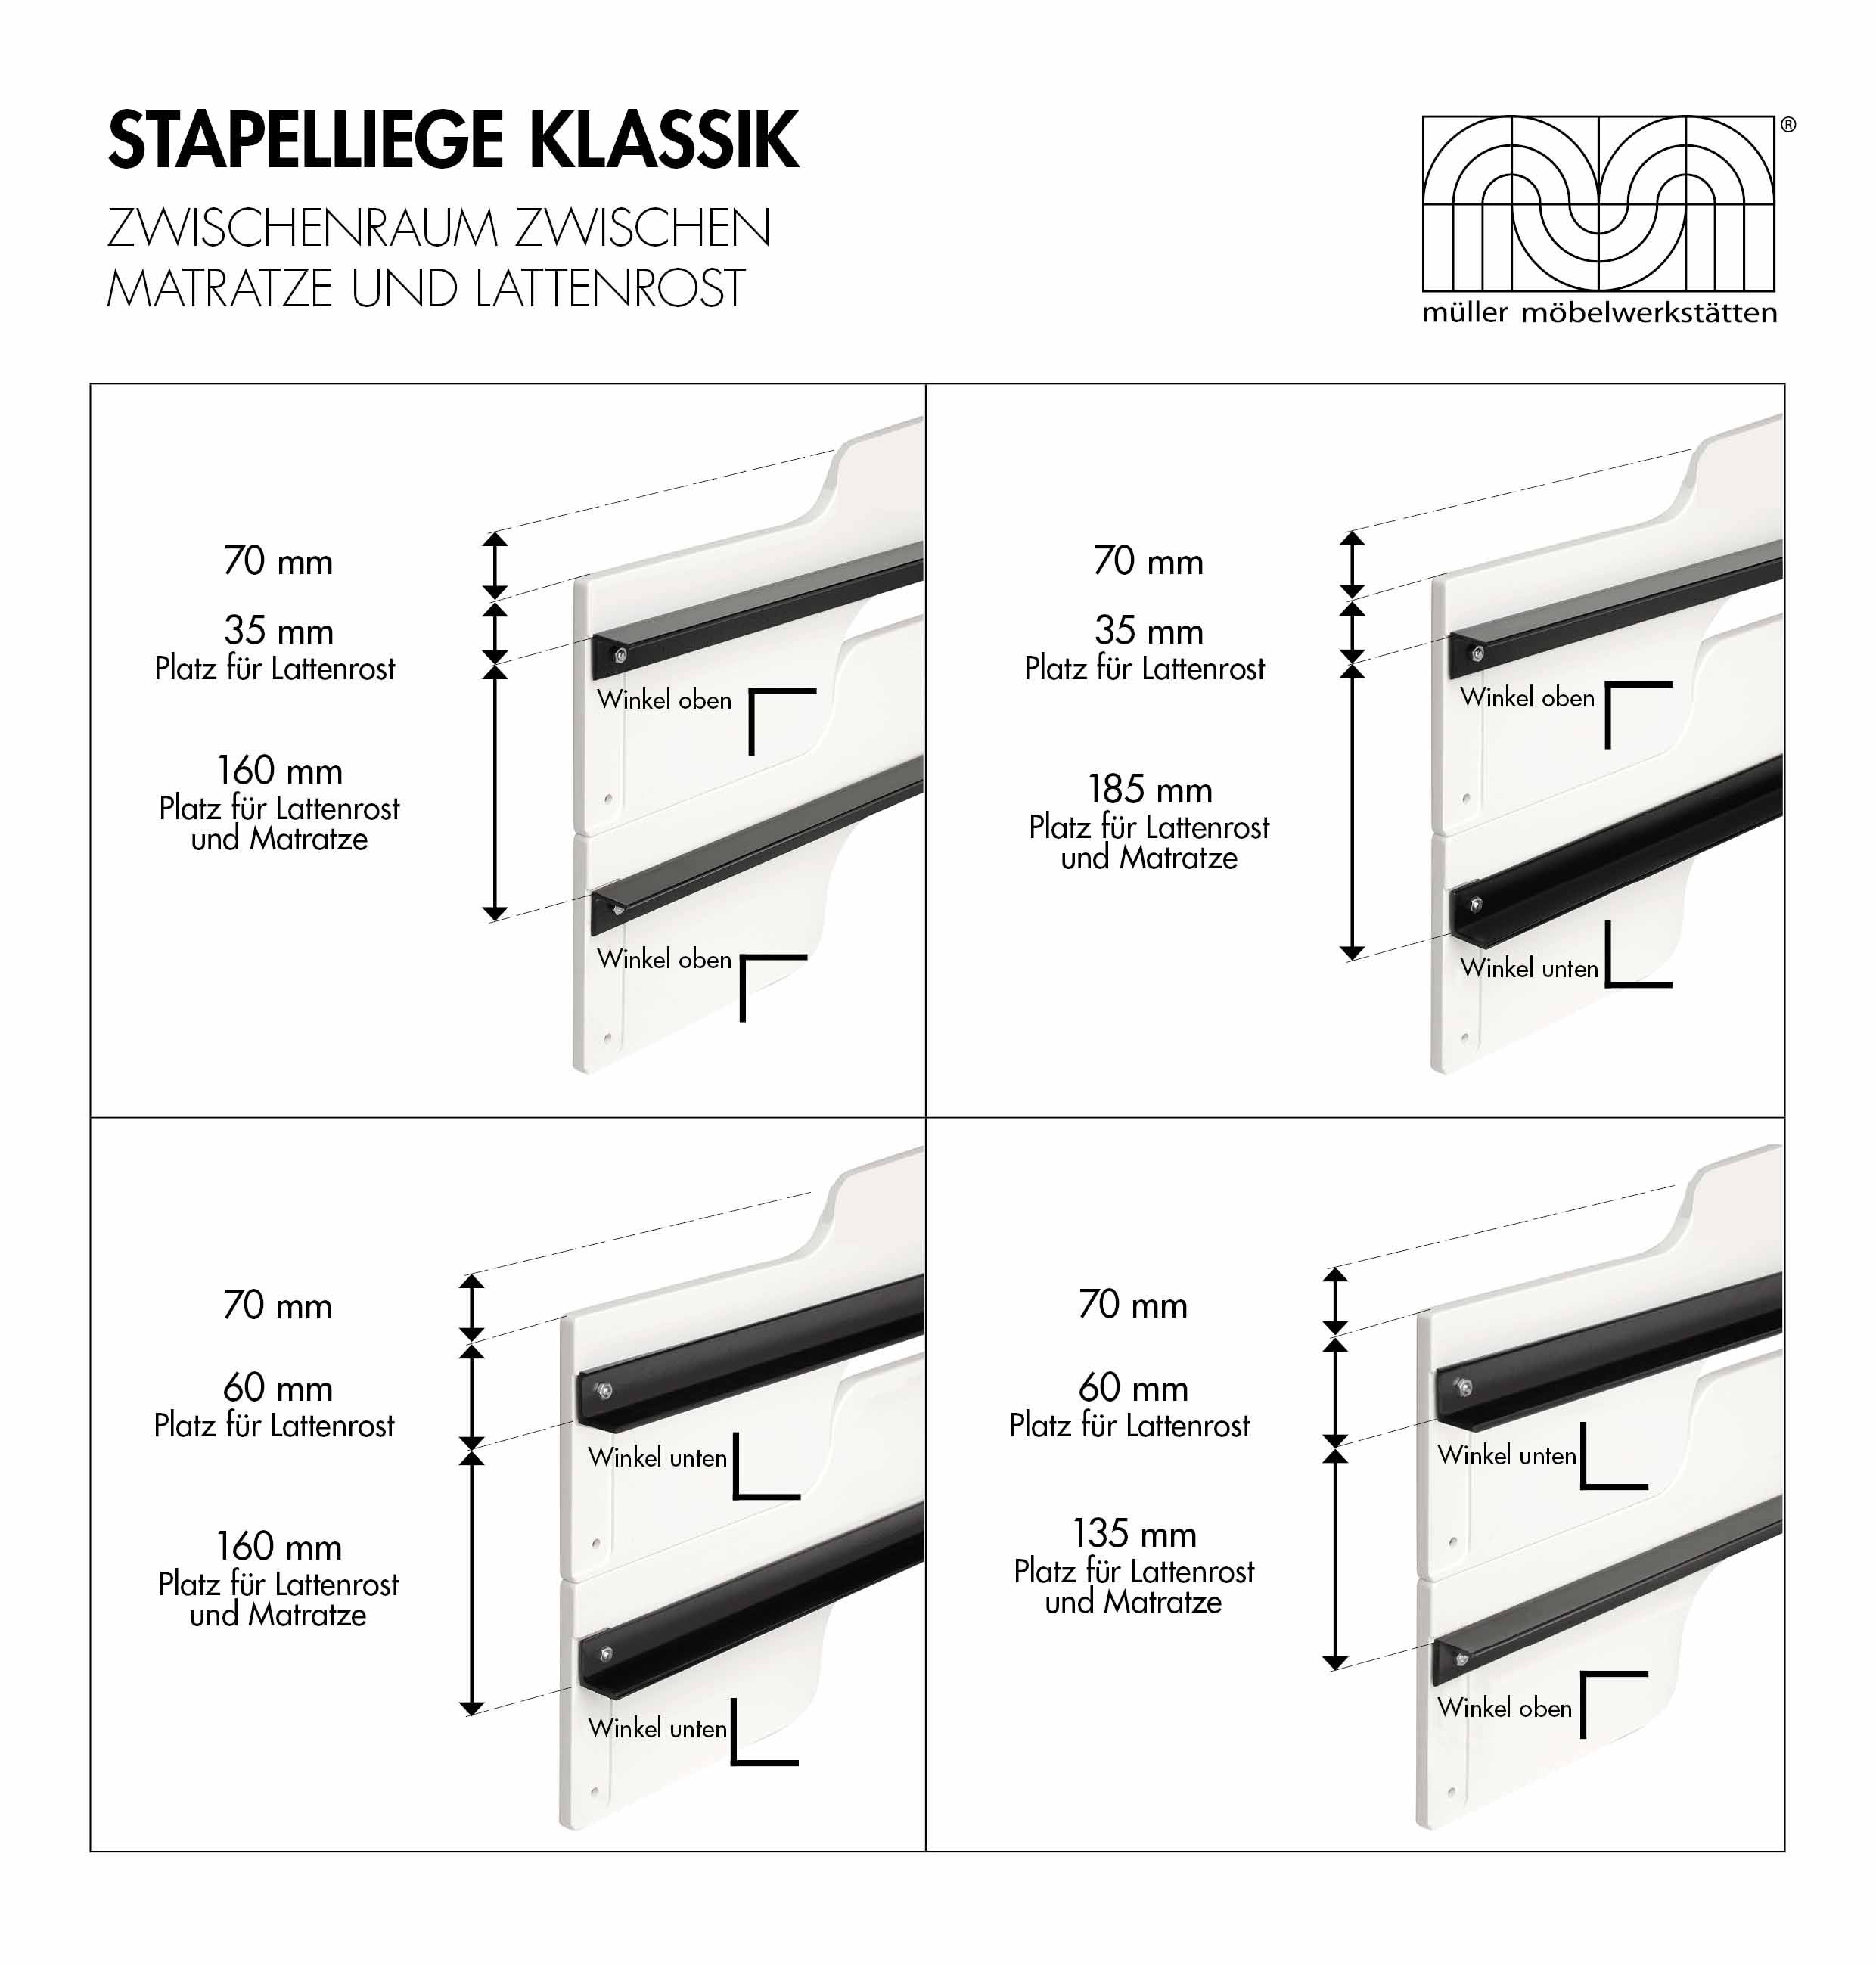 stapelliege_abstand_deutsch-klassik597add612f91e